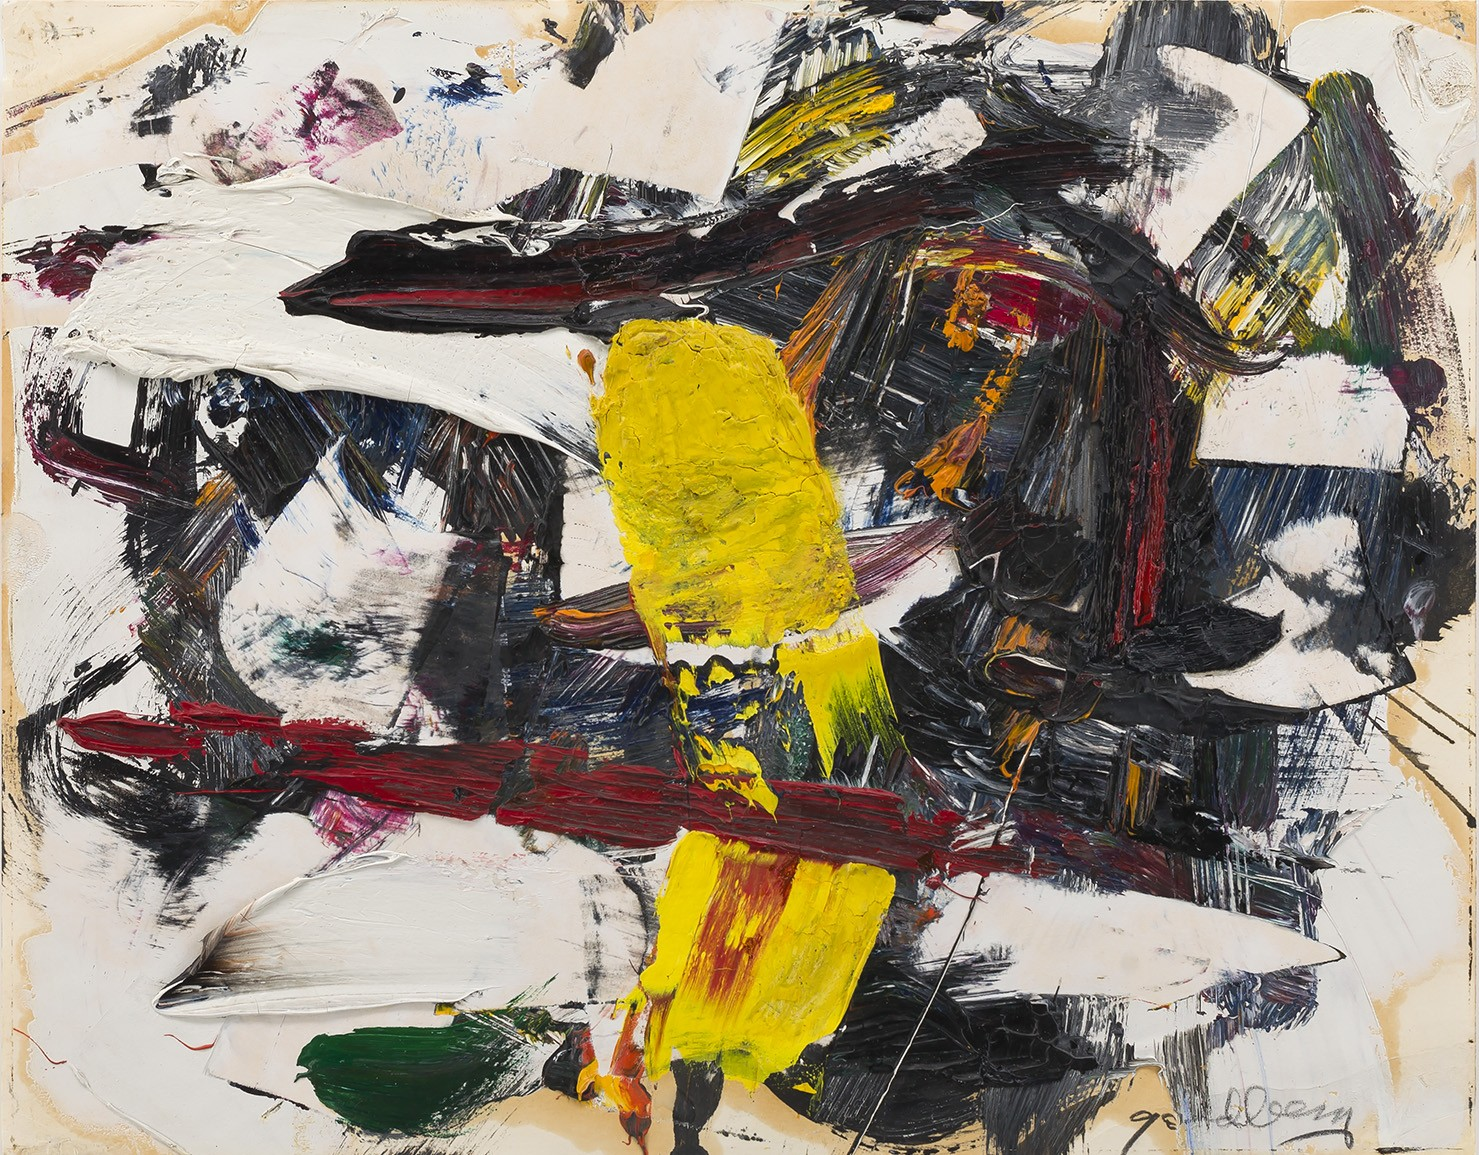 This work by Michael Goldberg is an abstract composition in yellow, red and white